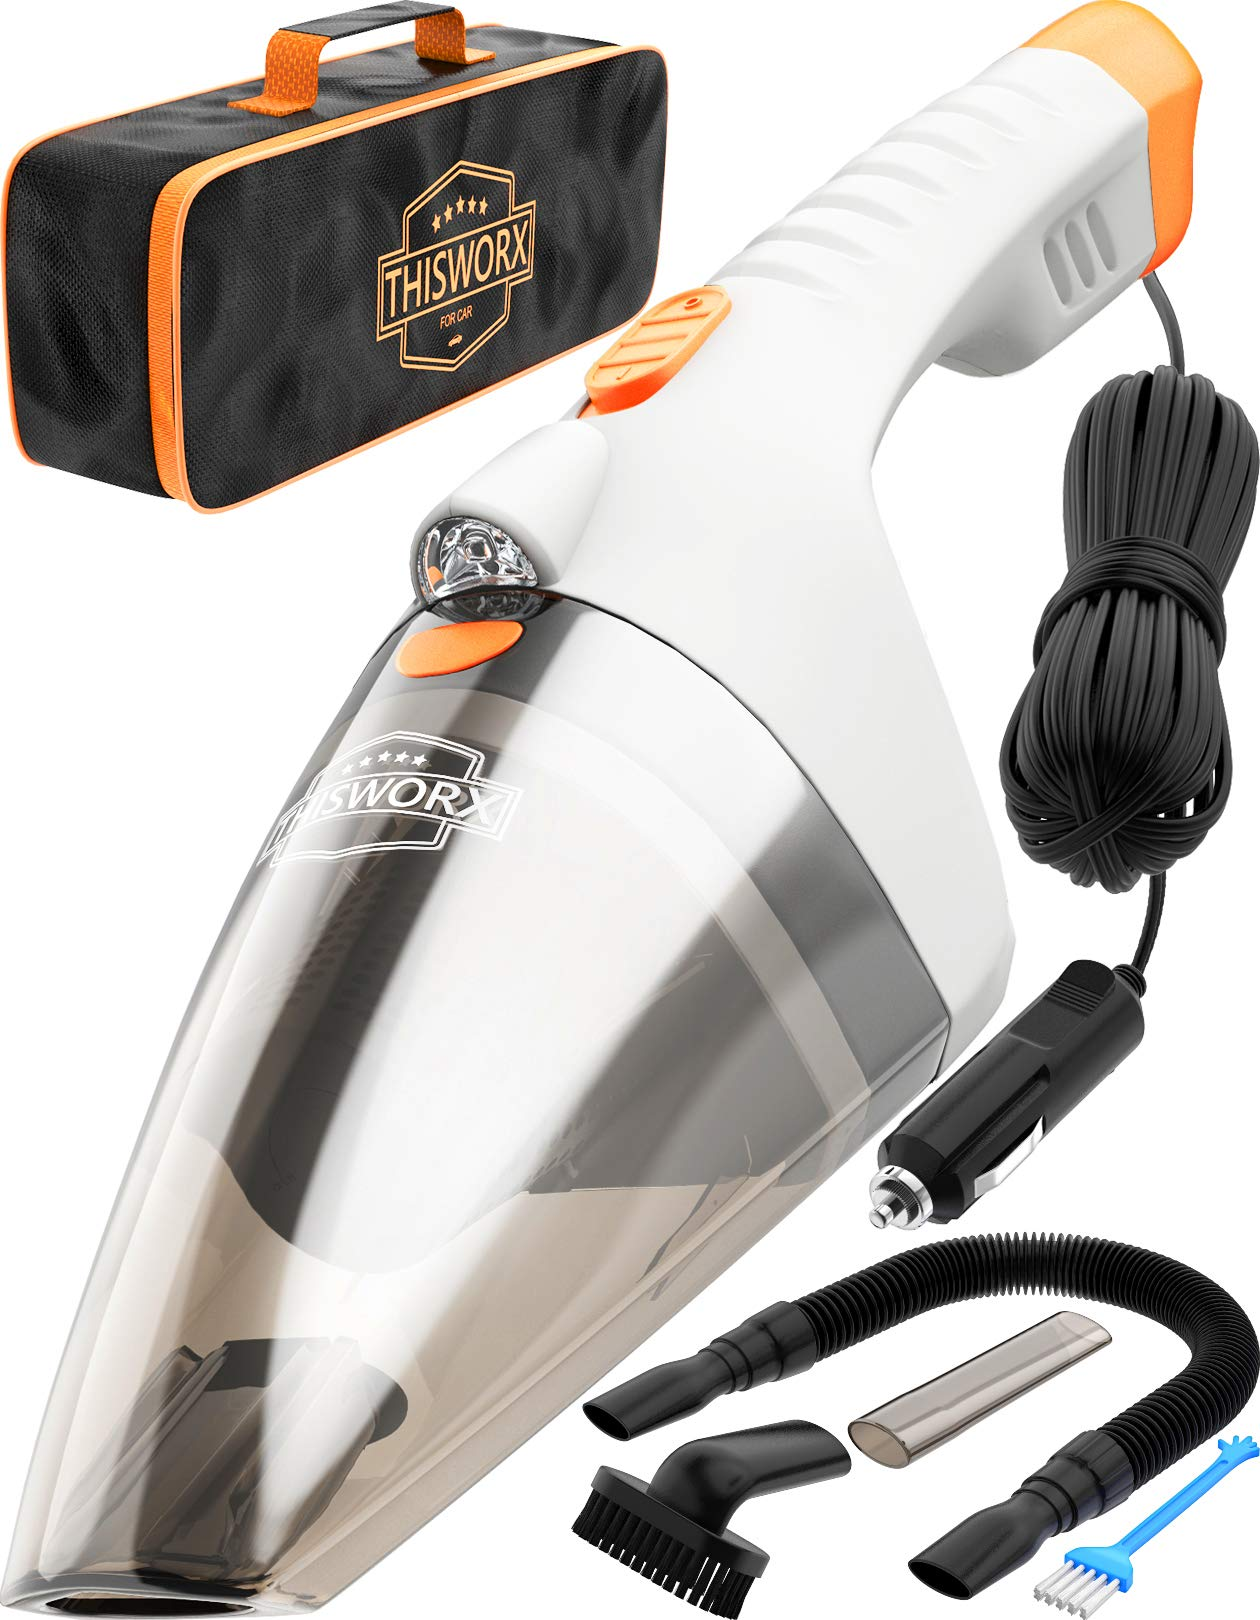 Car Vacuum Cleaner high Power - 110W 12v Corded auto Portable Vacuum Cleaner for Car Interior Cleaning - Lightweight DC Car Vac - Nozzle Set - Mini Handheld Car Vaccuume Cleaner for Men Women (White)